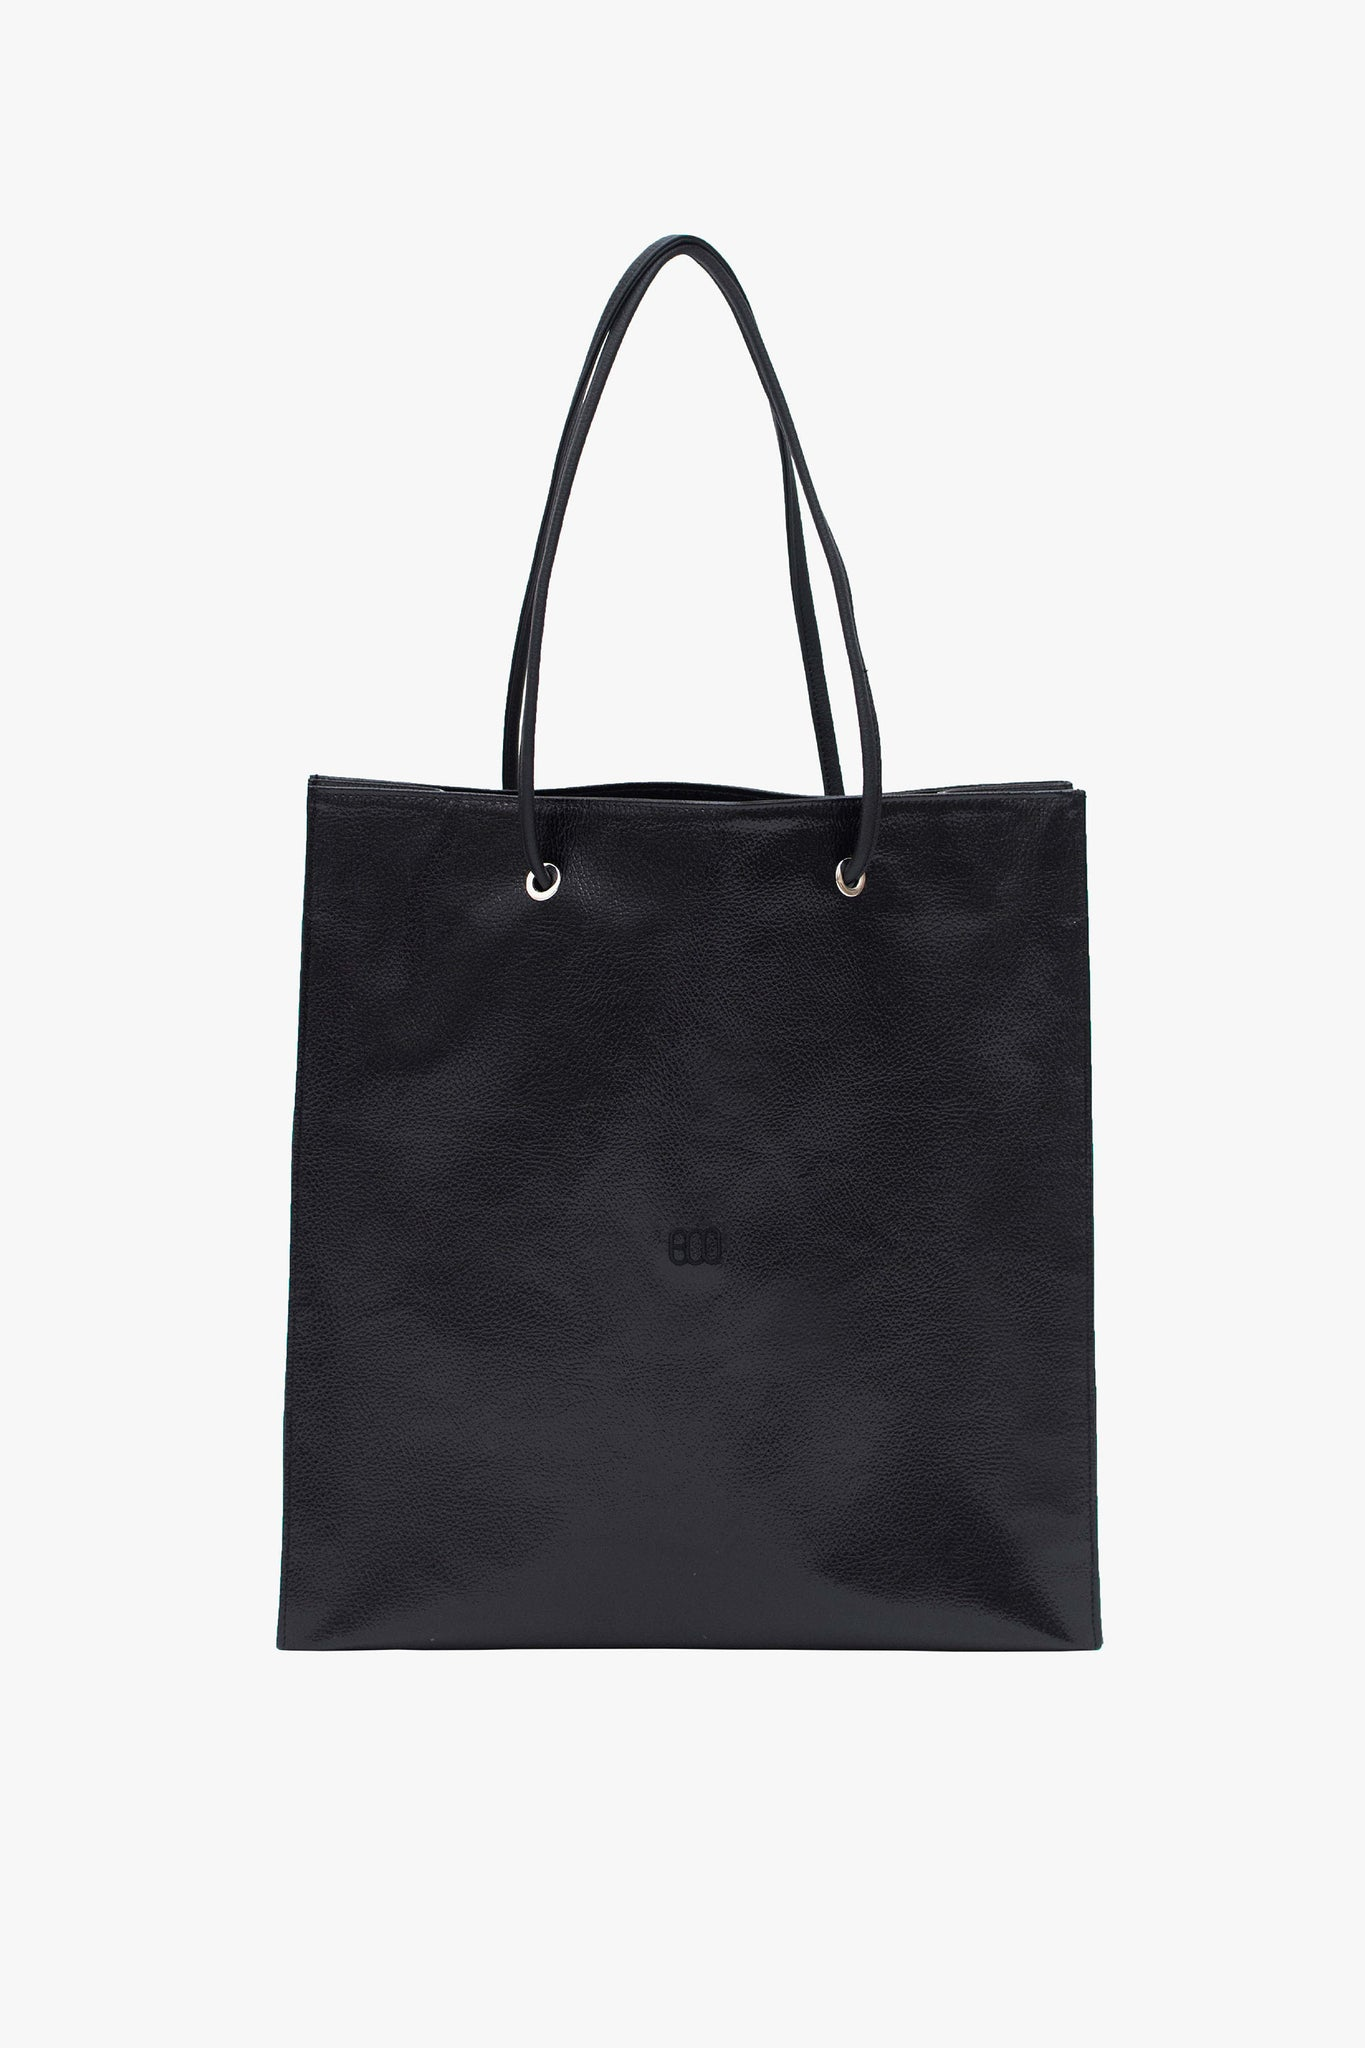 SHOPPING TOTE BAG WITH BLACK LOGO